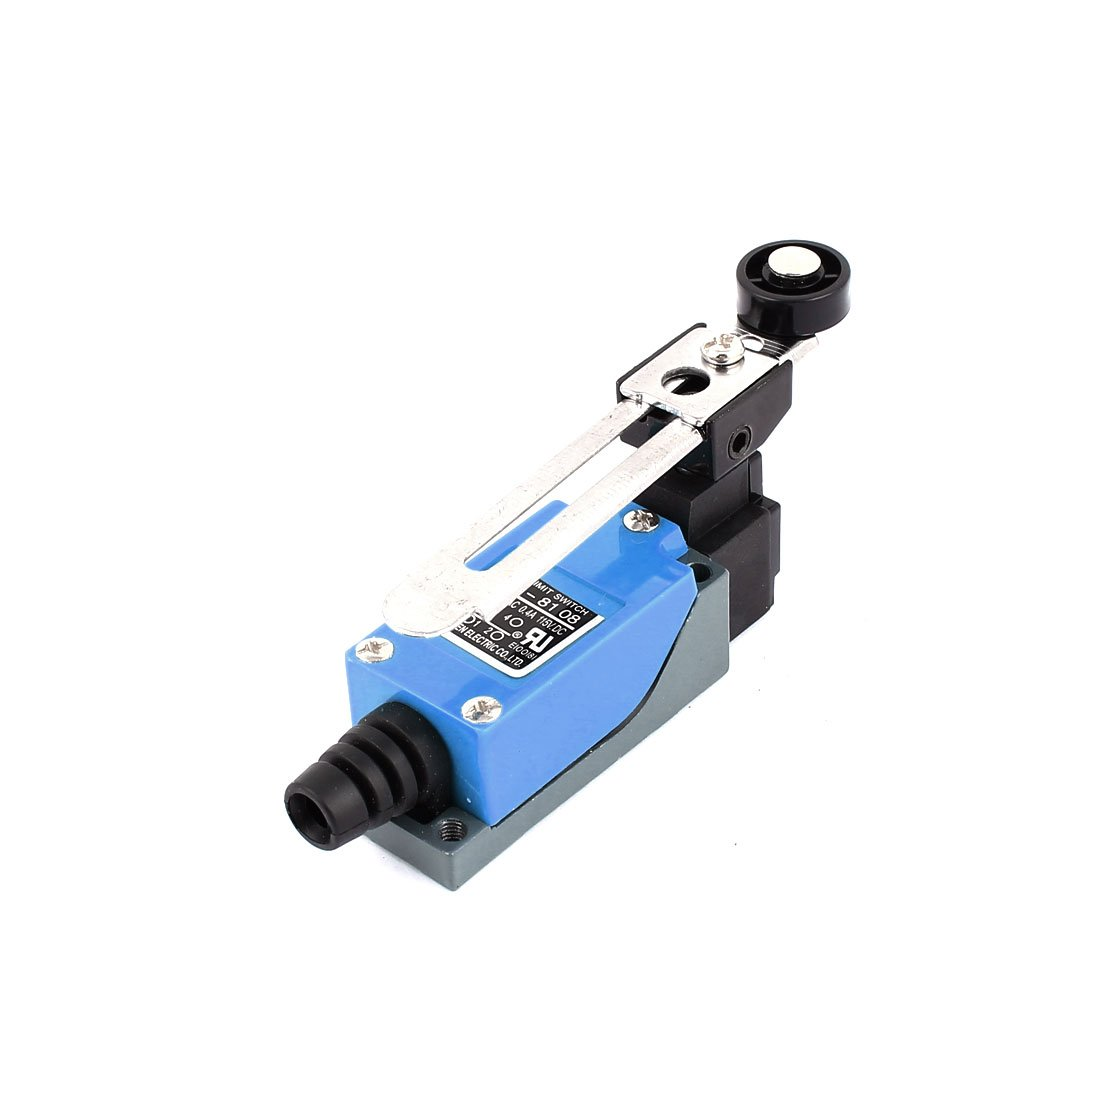 uxcell ME-8108 Adjustable Roller Lever Mini Limit Switch 2NO 2NC AC250V 5A DC115V 0.4A